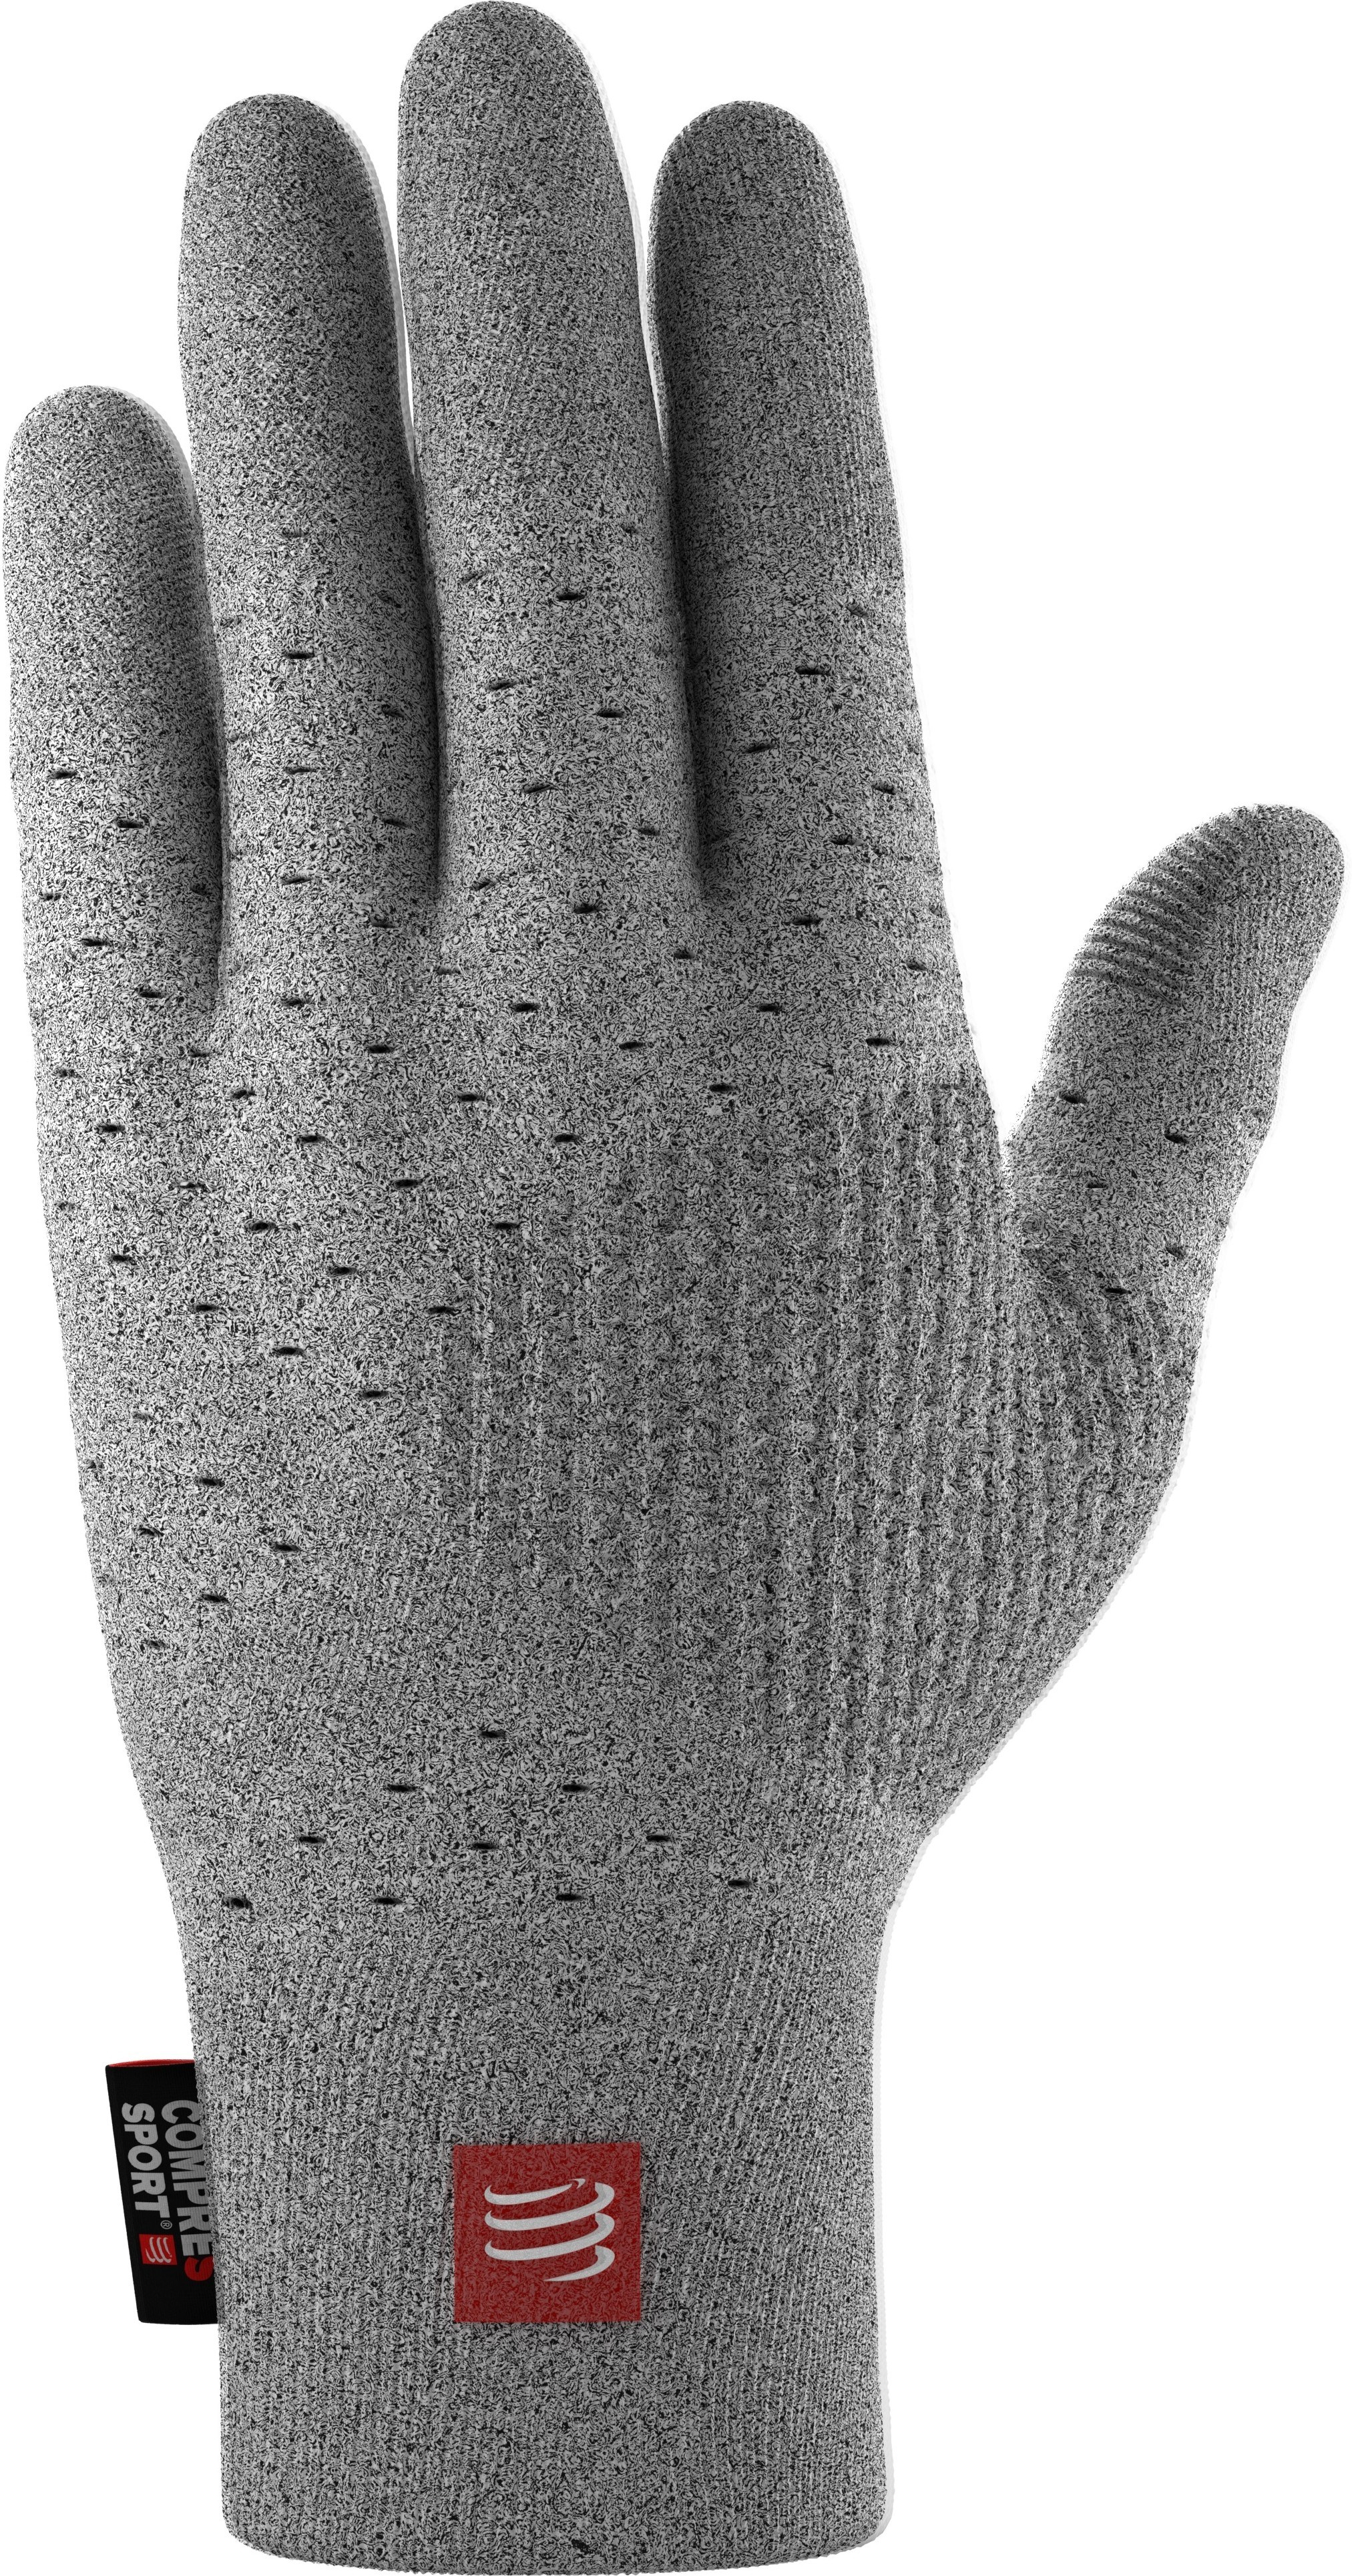 Compressport 3D Thermo Seamless Running Gloves Gris